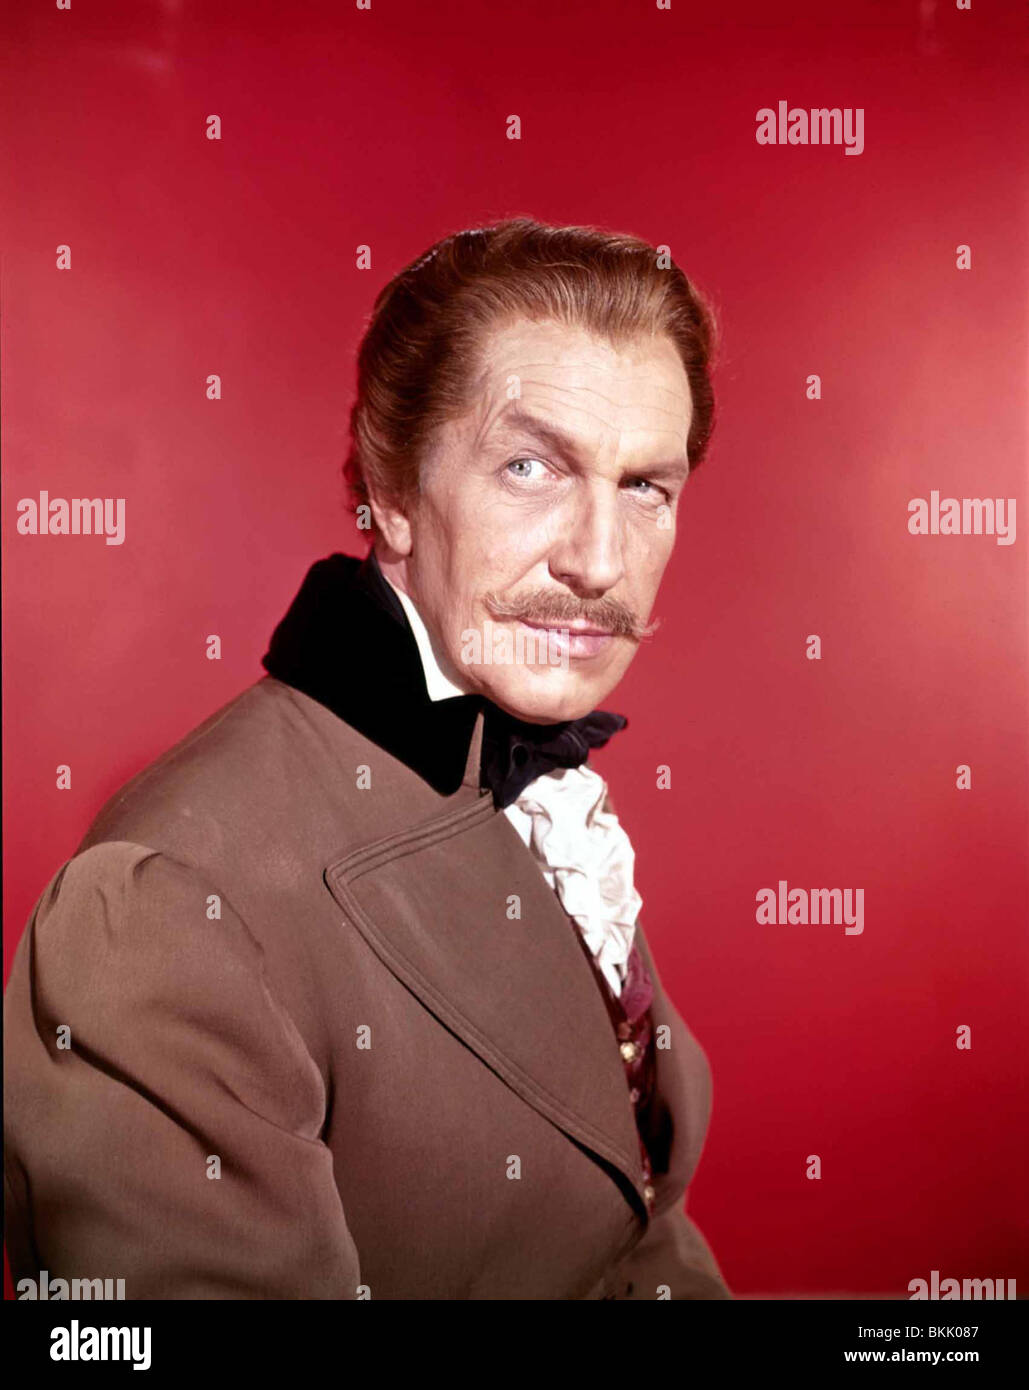 TALES OF TERROR (1962) VINCENT PRICE TTOR 001-02 - Stock Image